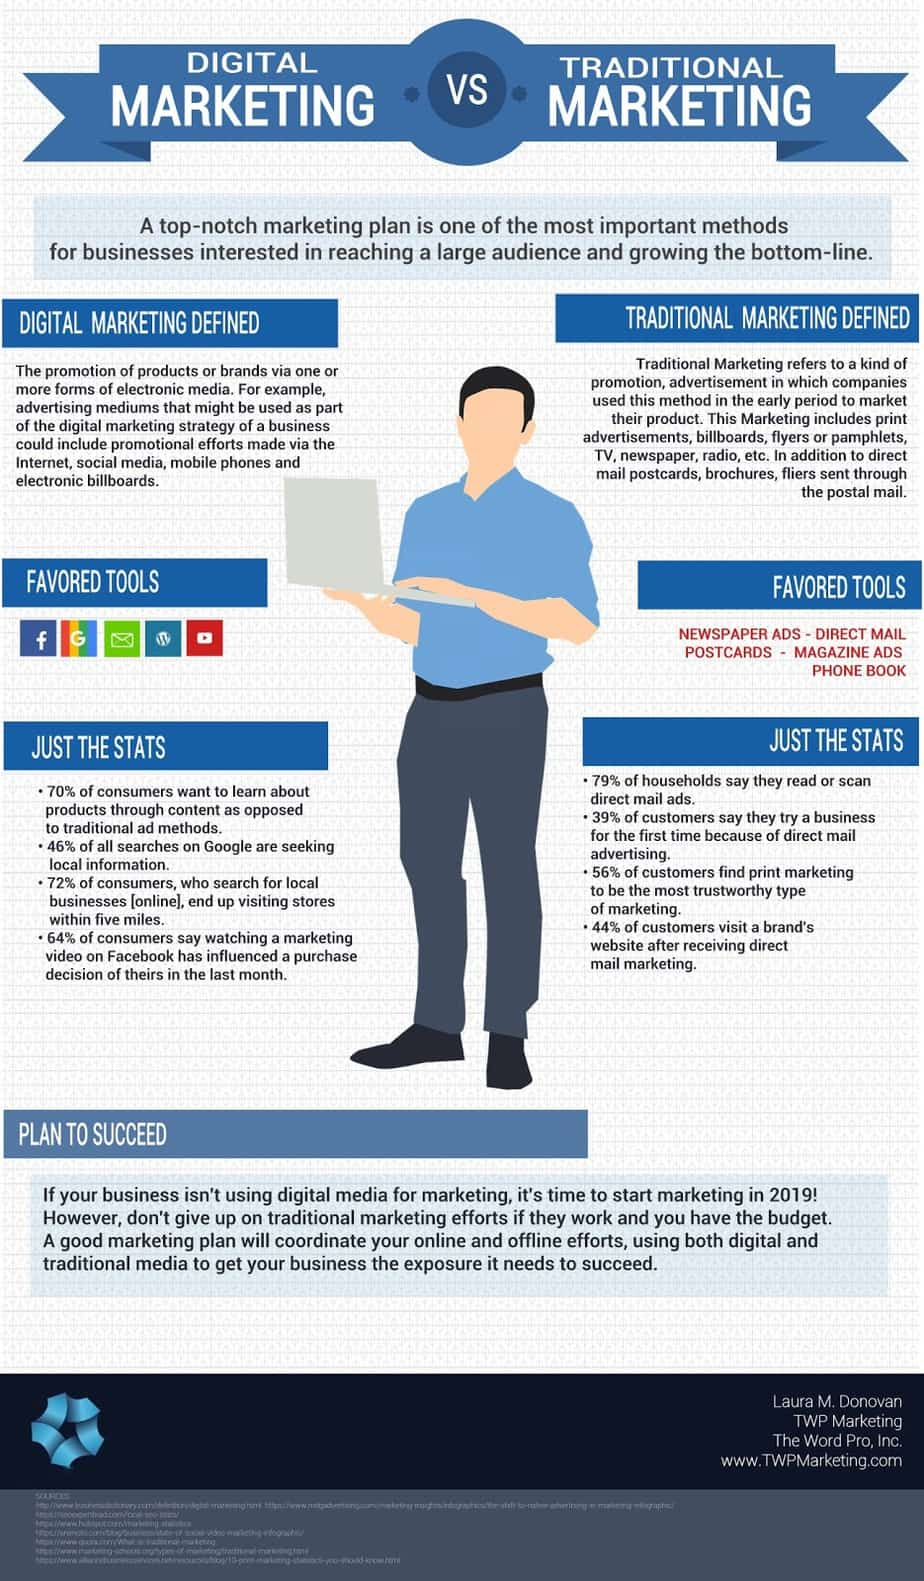 A Comparison Infographic comparing digital marketing with traditional marketing